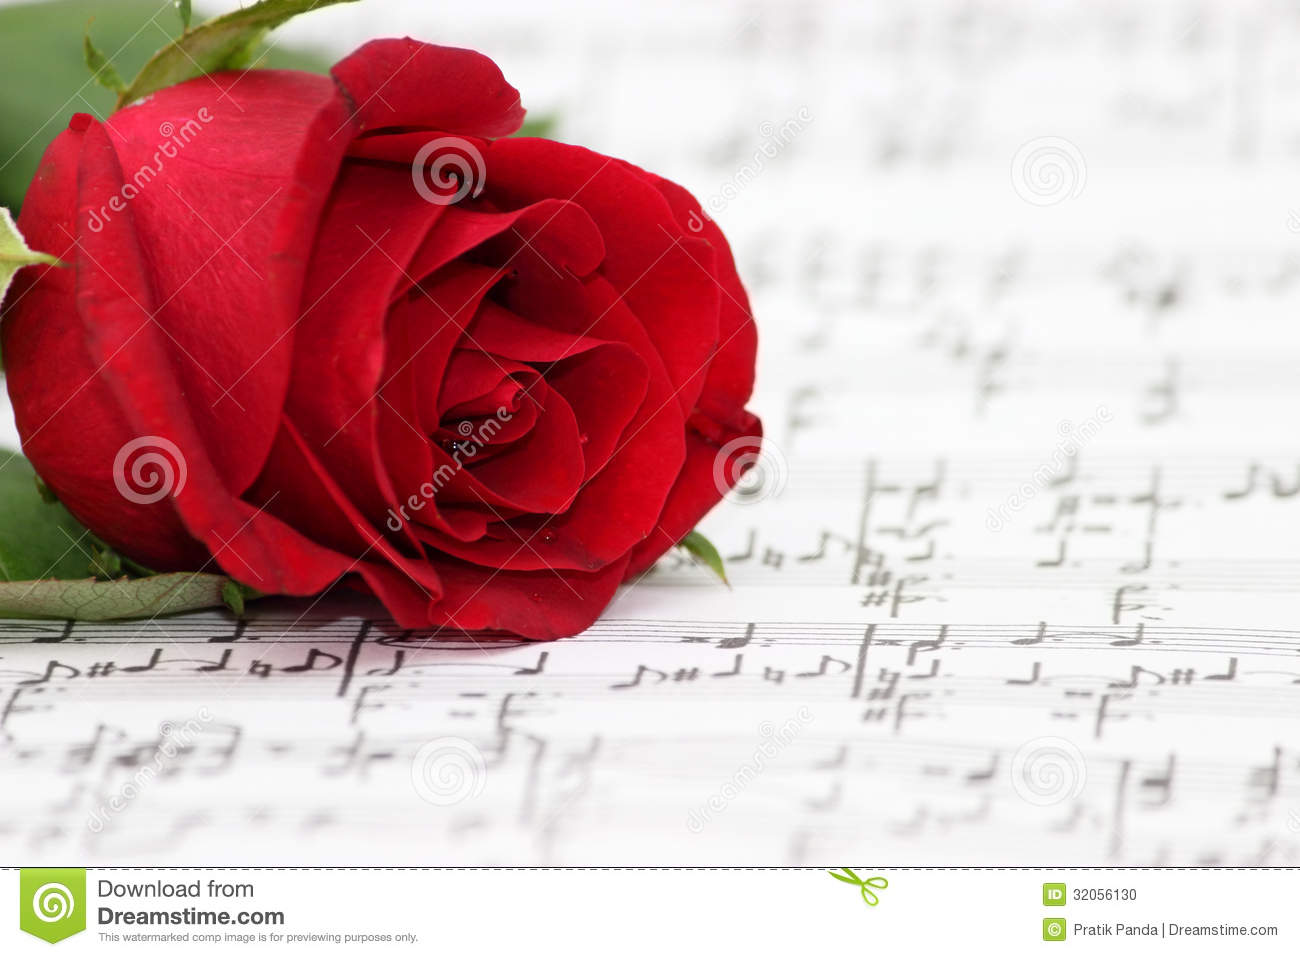 10 Romantic Love Songs Desktop Wallpapers